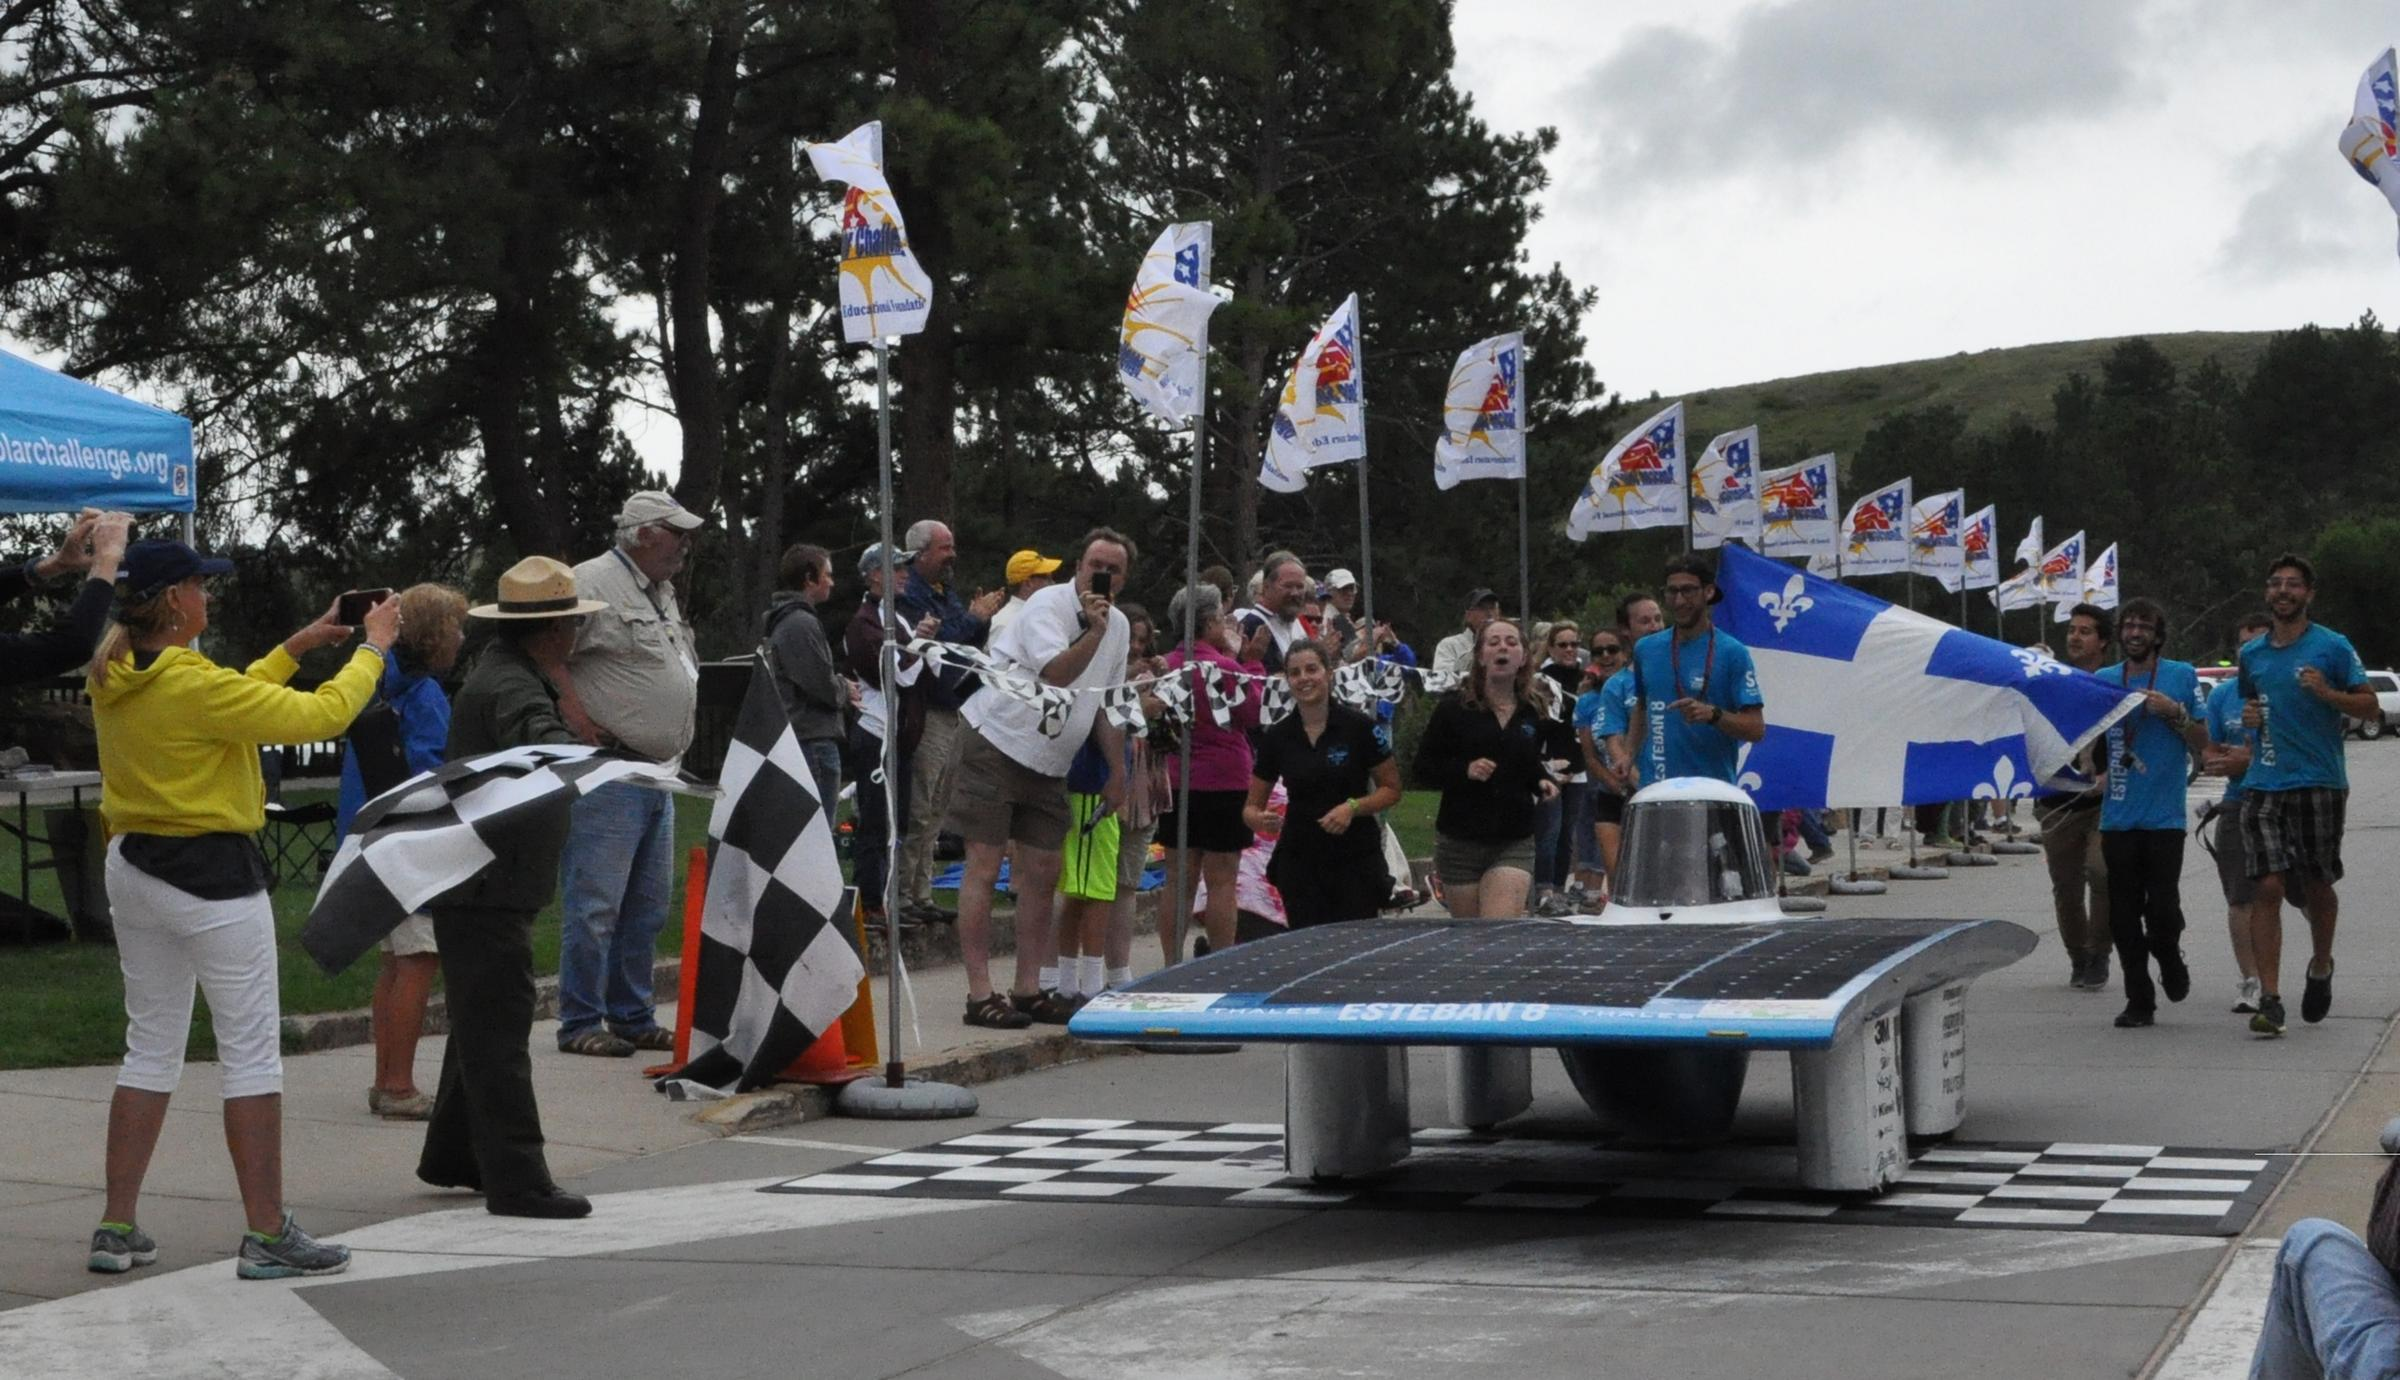 Solar Car Rally Reaches Finish Line At Wind Cave